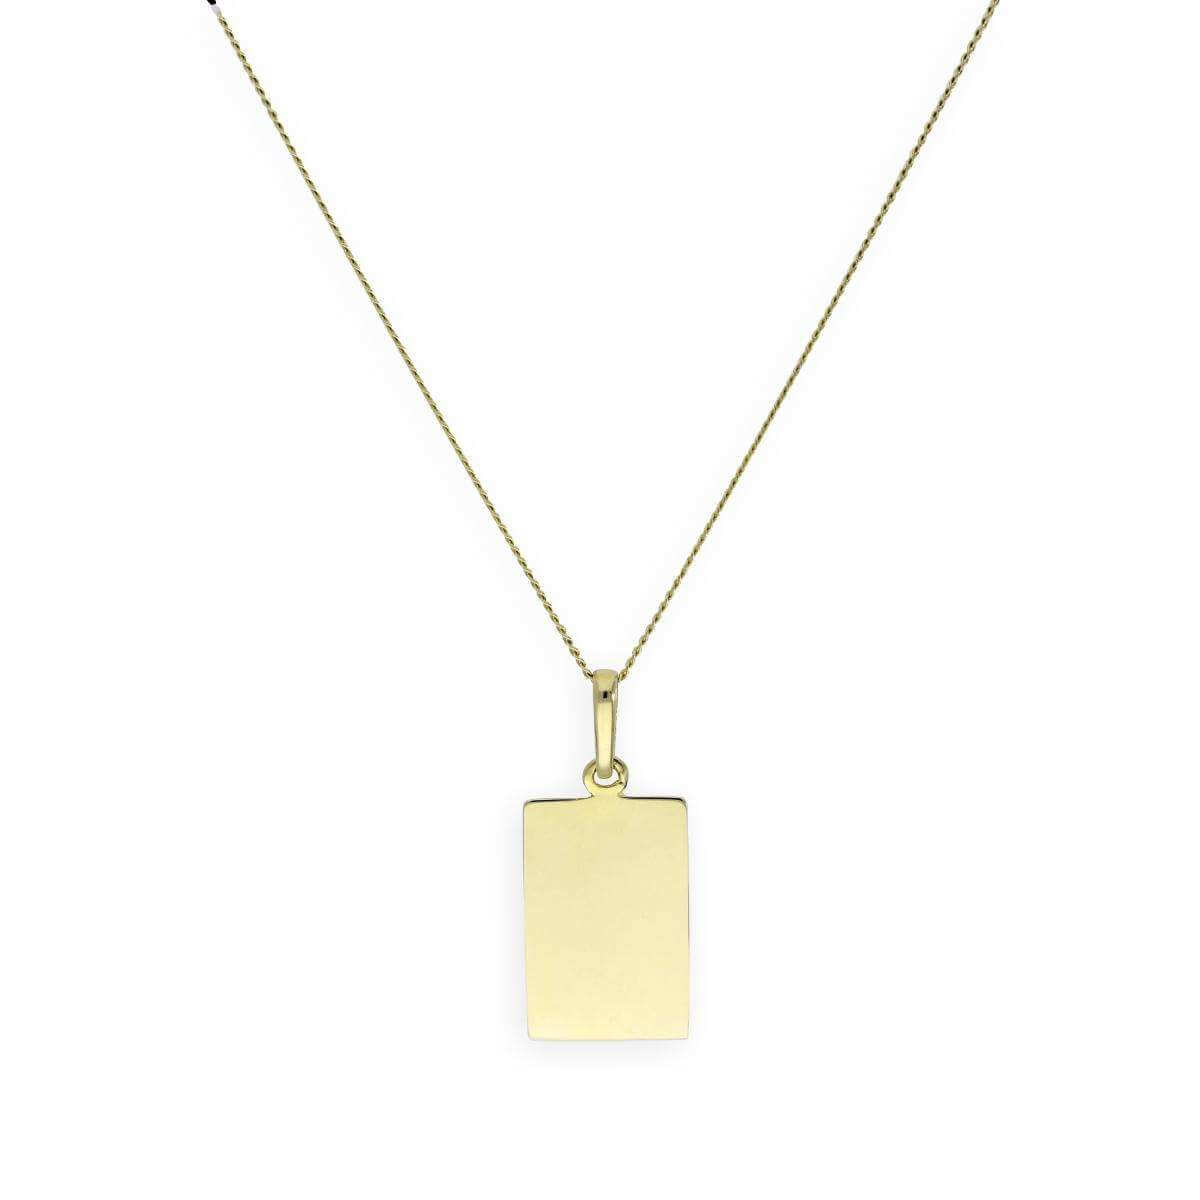 9ct Gold Engravable Rectangular Pendant on Chain 16 - 20 Inches